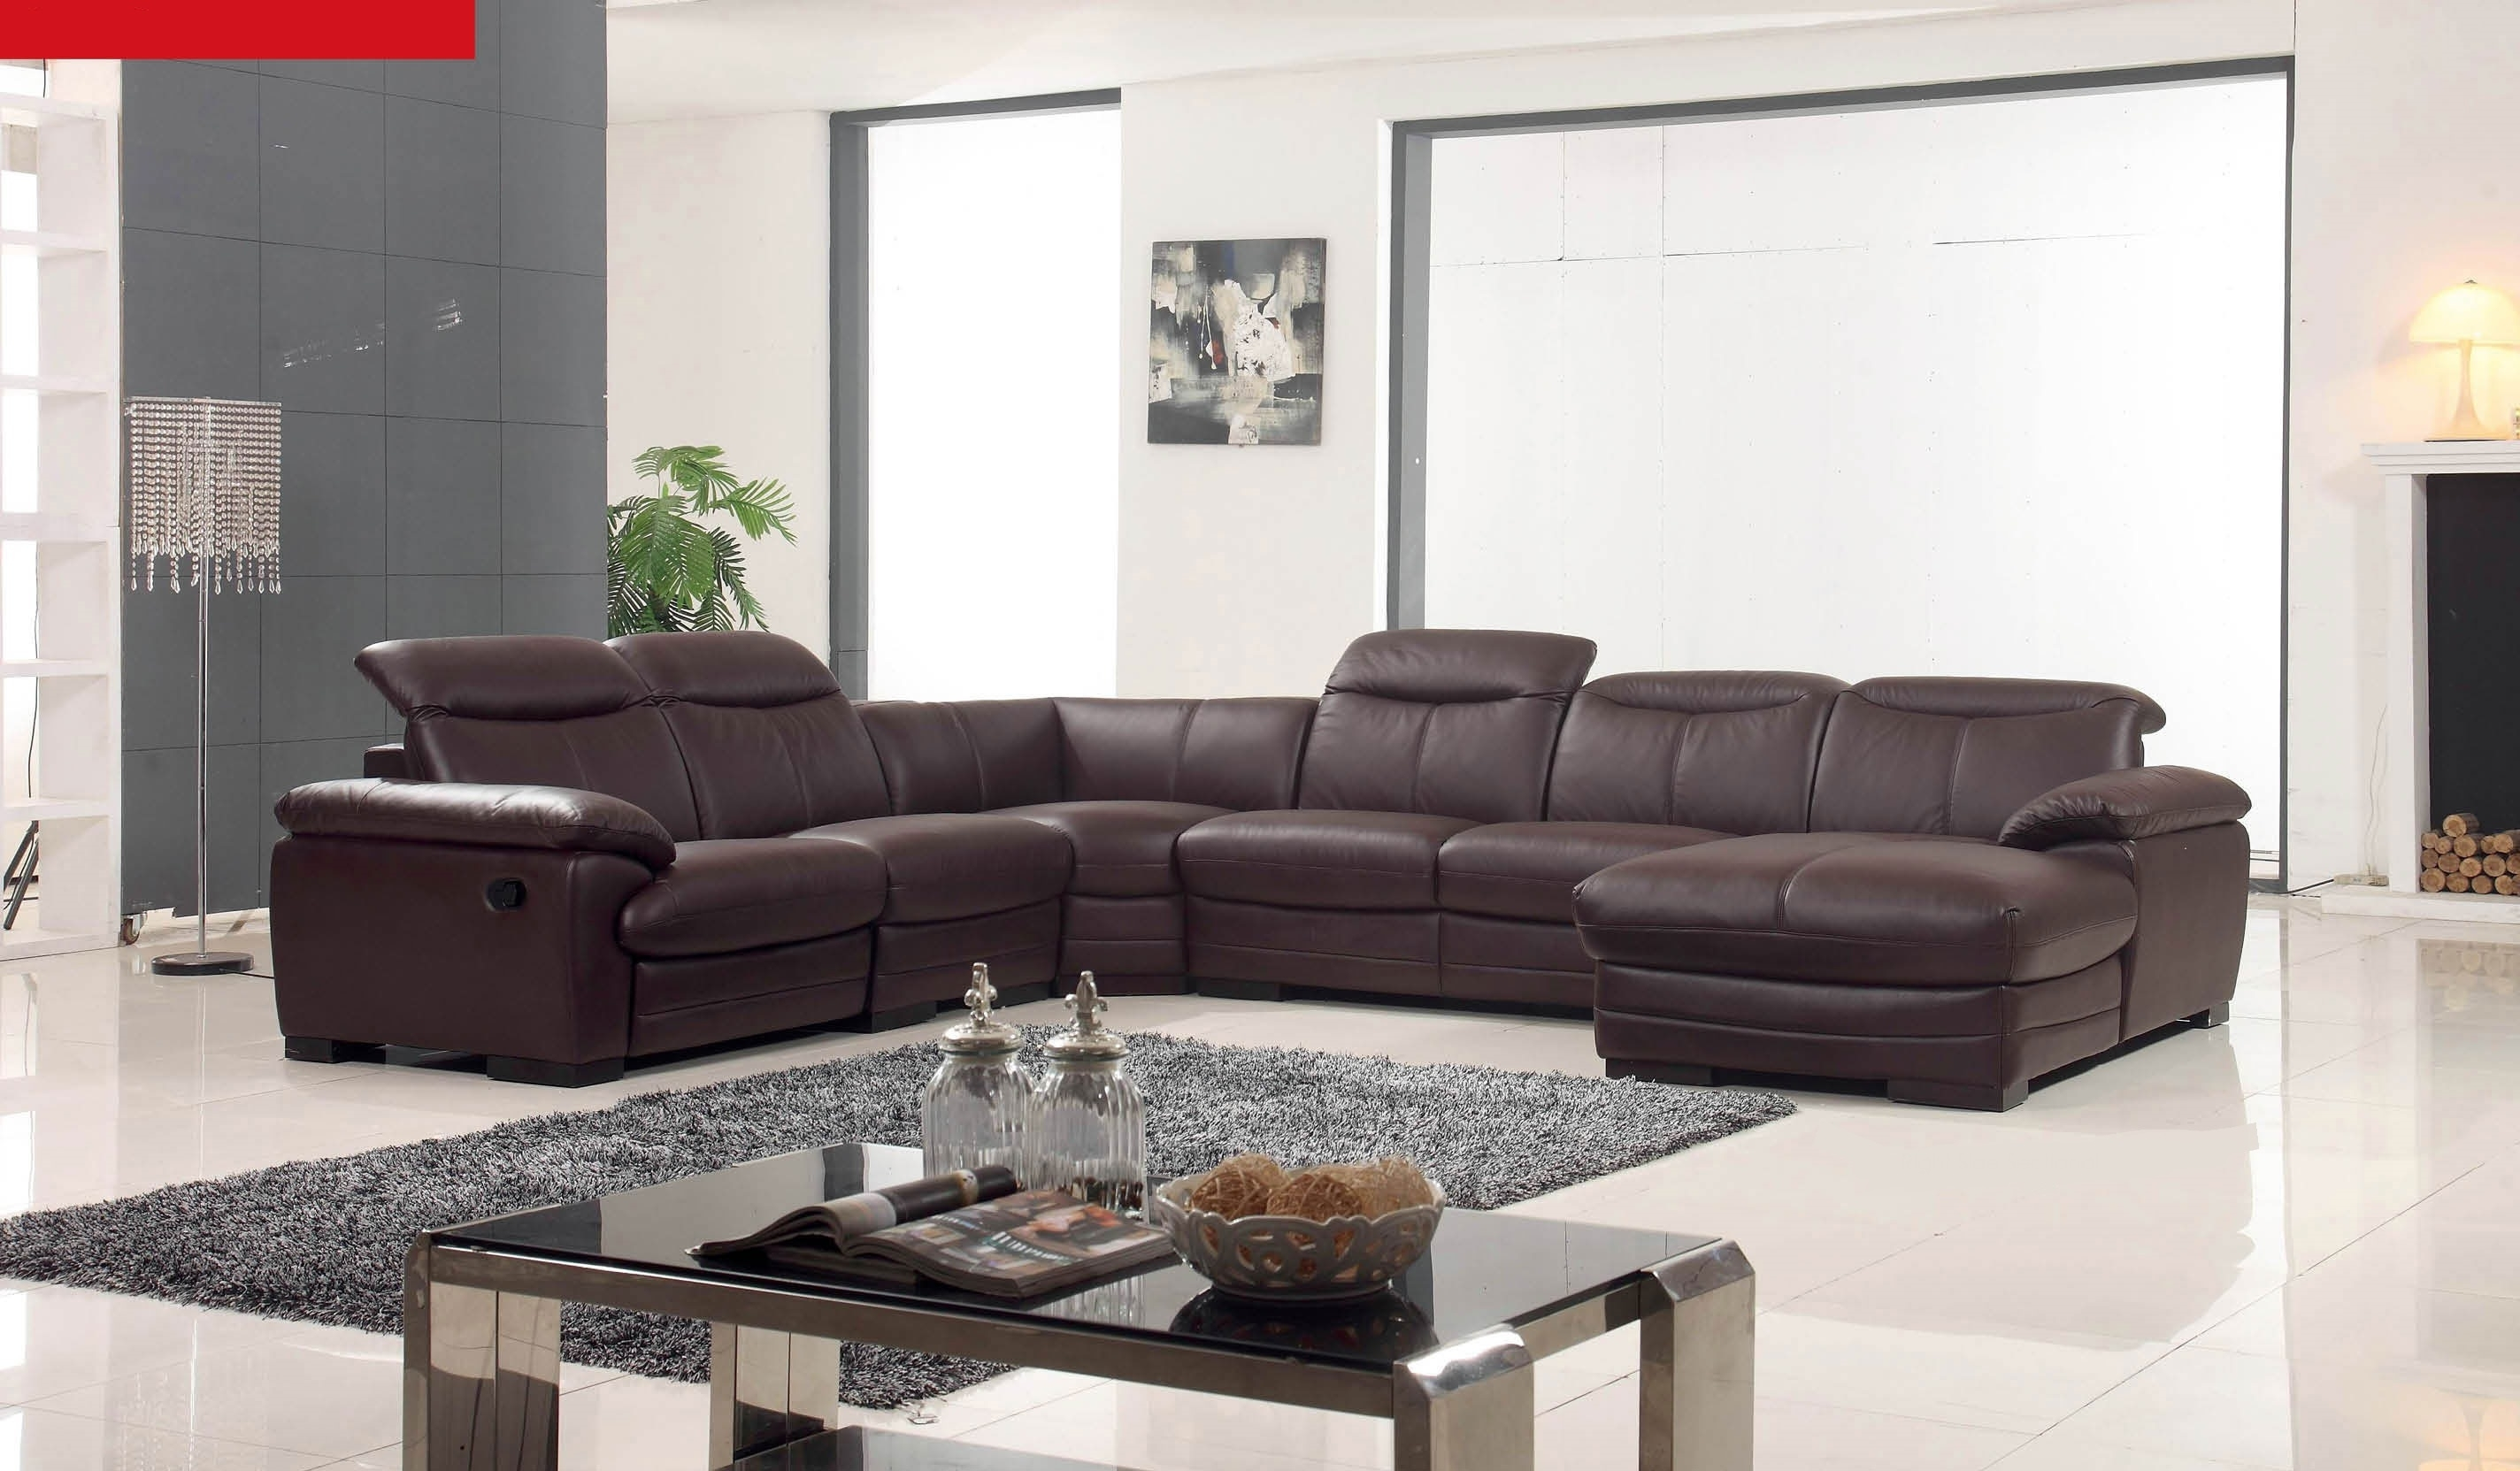 Trendy Sectional Sofas: Vermont Sectional Sofa Jp 2146 Sectional/4 – Ba Inside Vt Sectional Sofas (View 12 of 21)